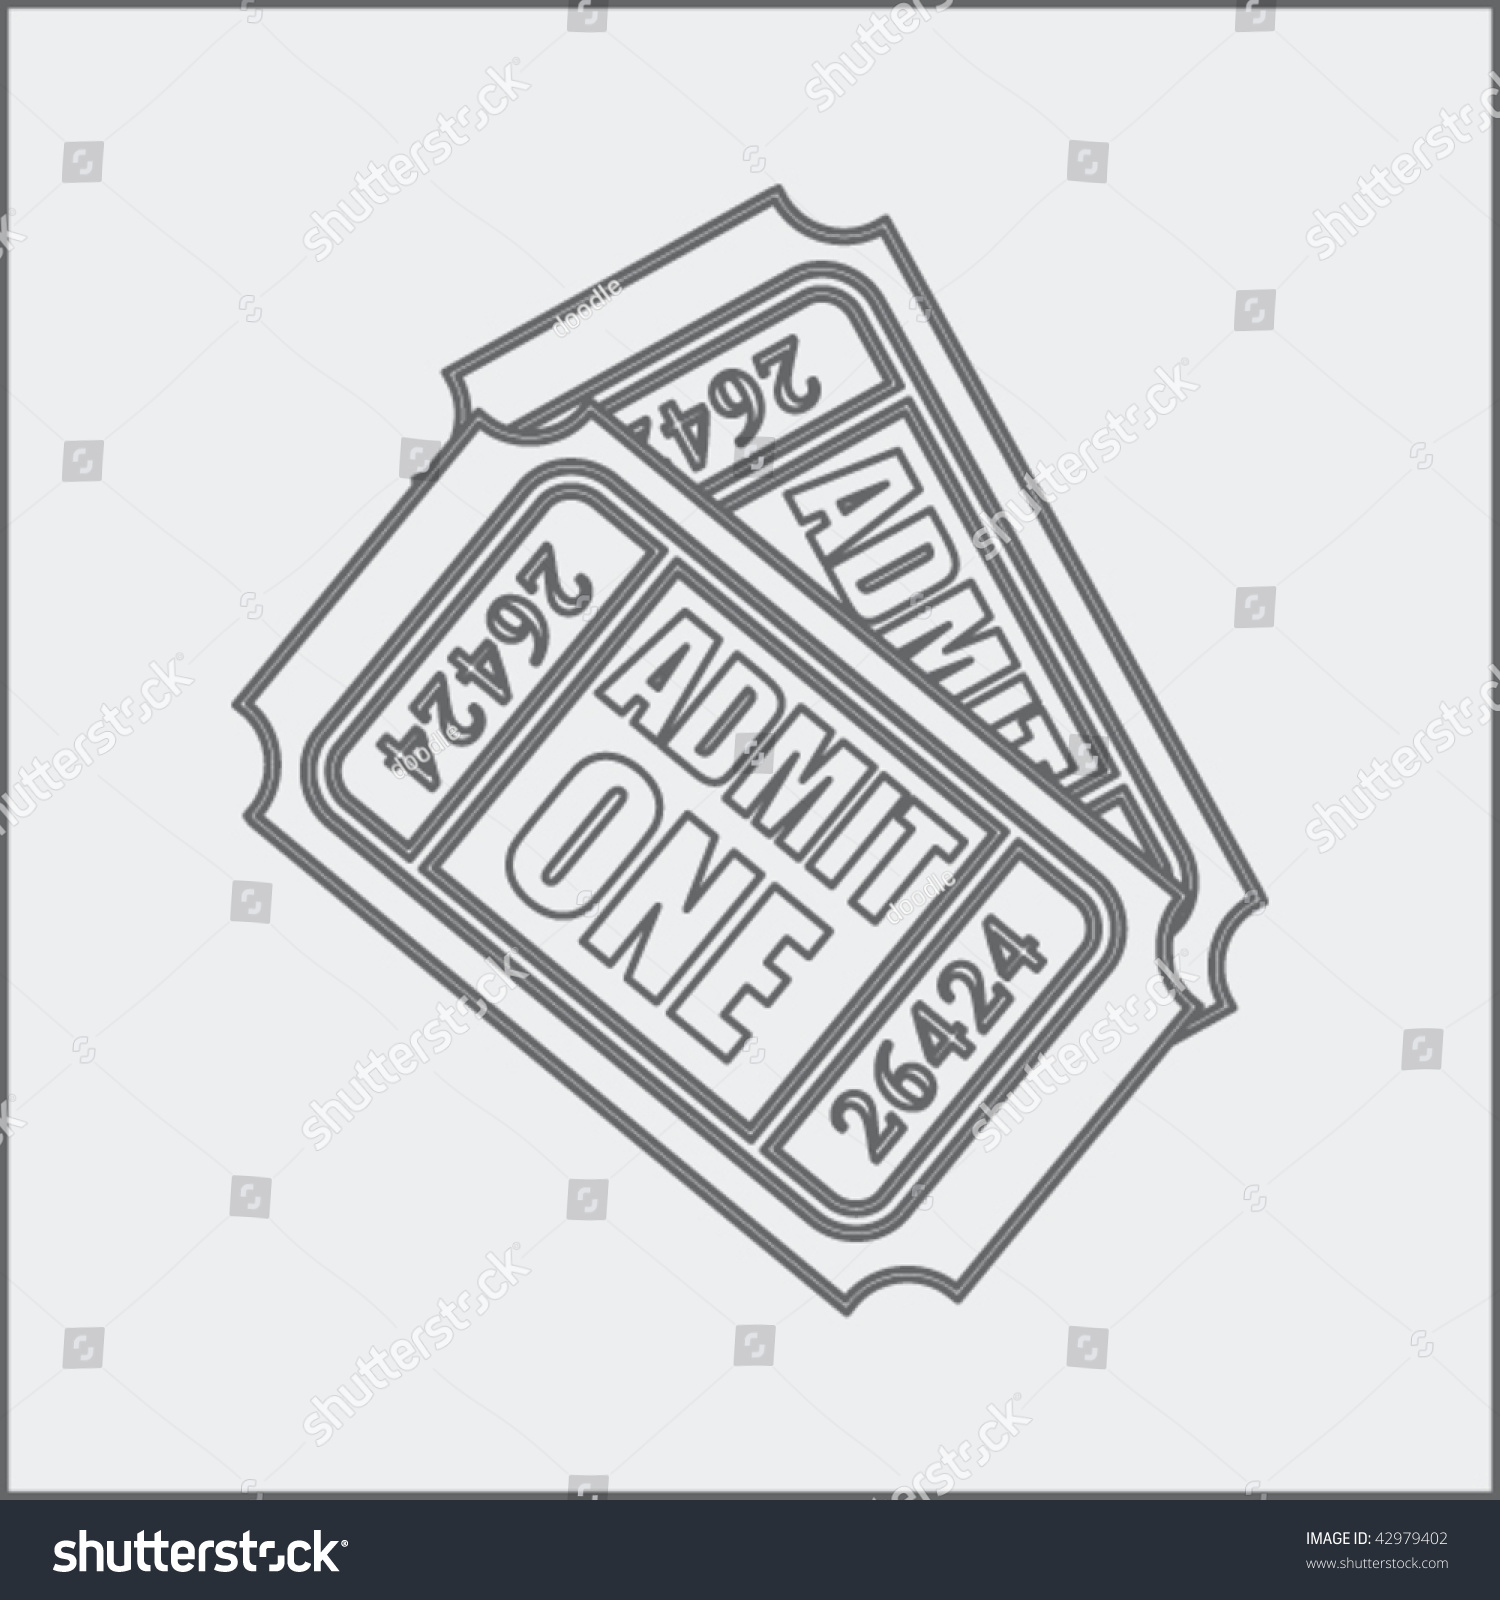 admission ticket drawing stock vector 42979402 shutterstock admission ticket drawing